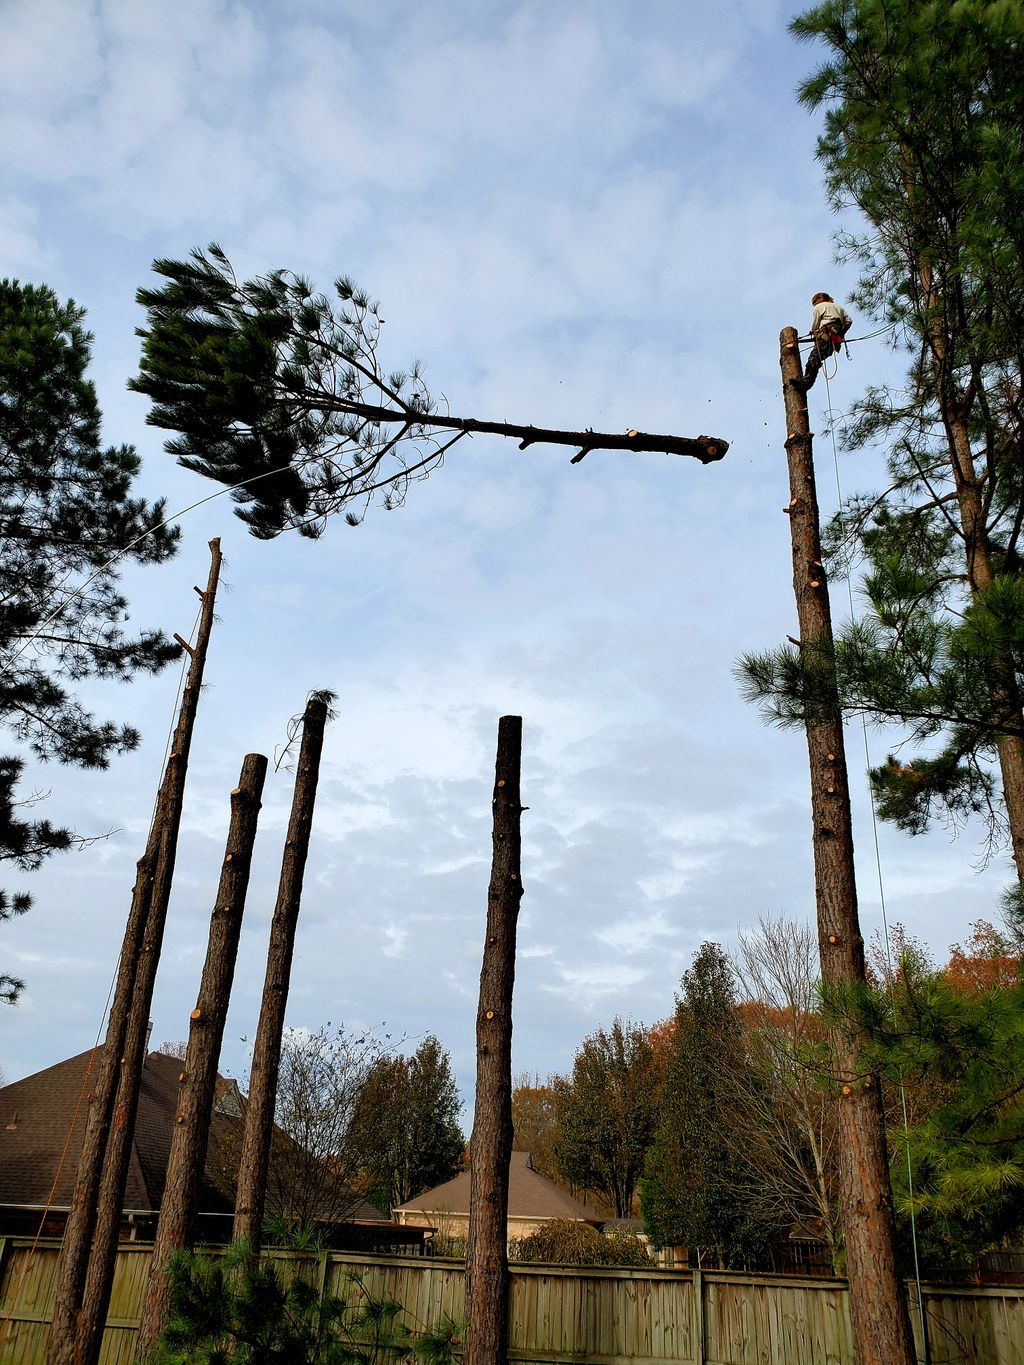 10 Pine Trees and 10 Stump Removal